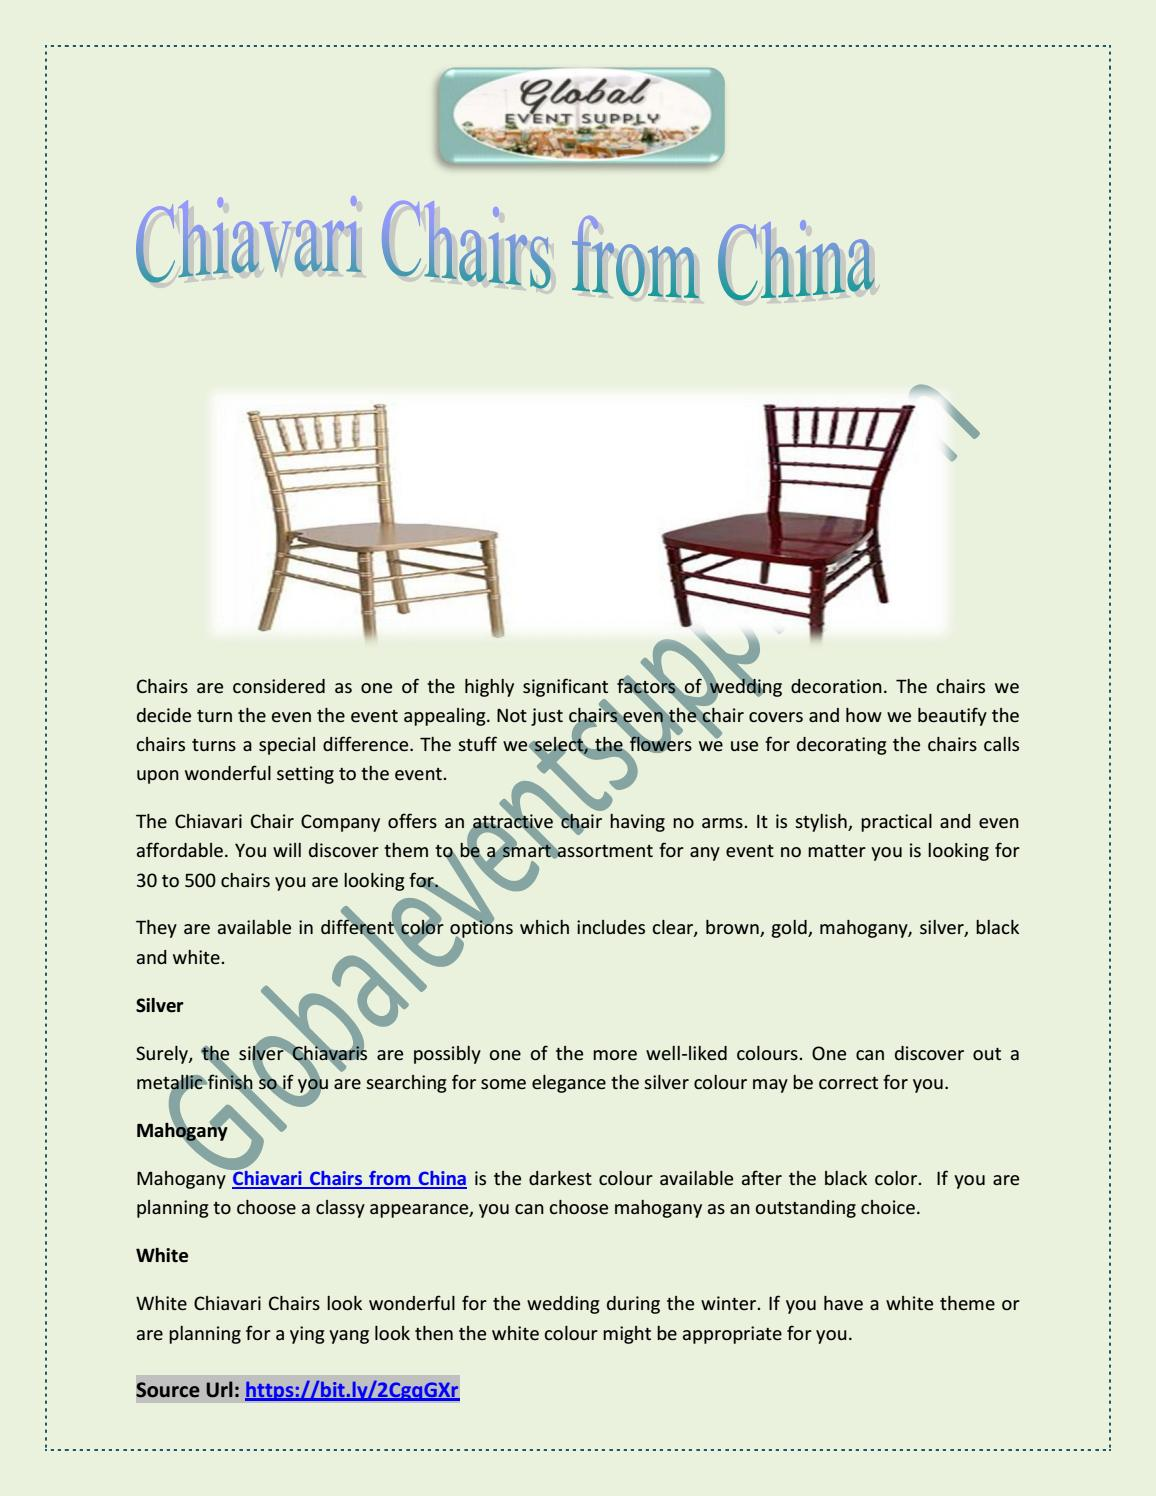 Marvelous Chiavari Chairs From China Make A Right Selection As Per Forskolin Free Trial Chair Design Images Forskolin Free Trialorg